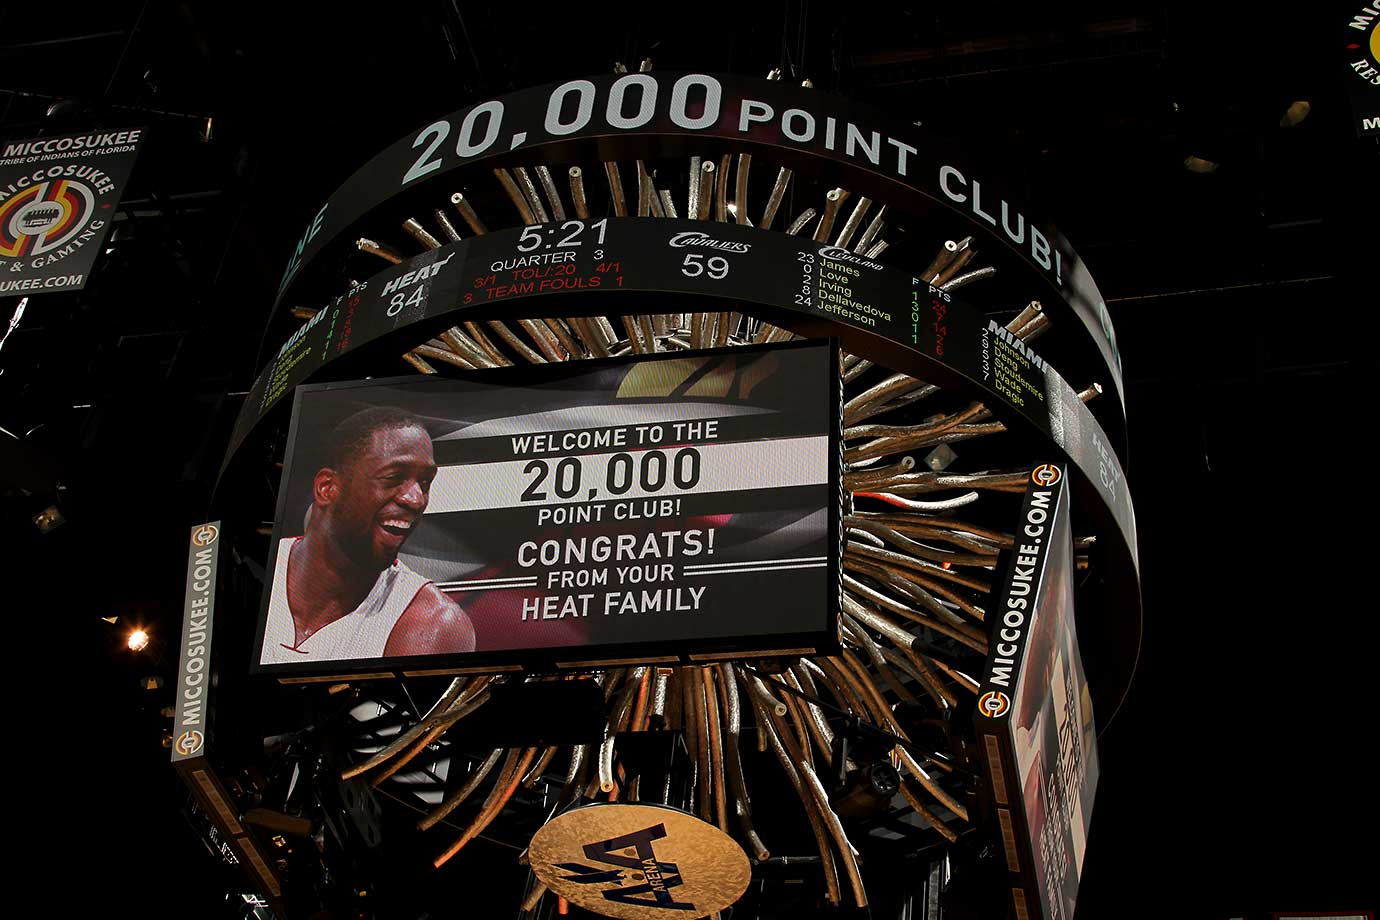 Dwyane Wade of the Miami Heat scored his 20,000th point Saturday in a game against the Cleveland Cavaliers.